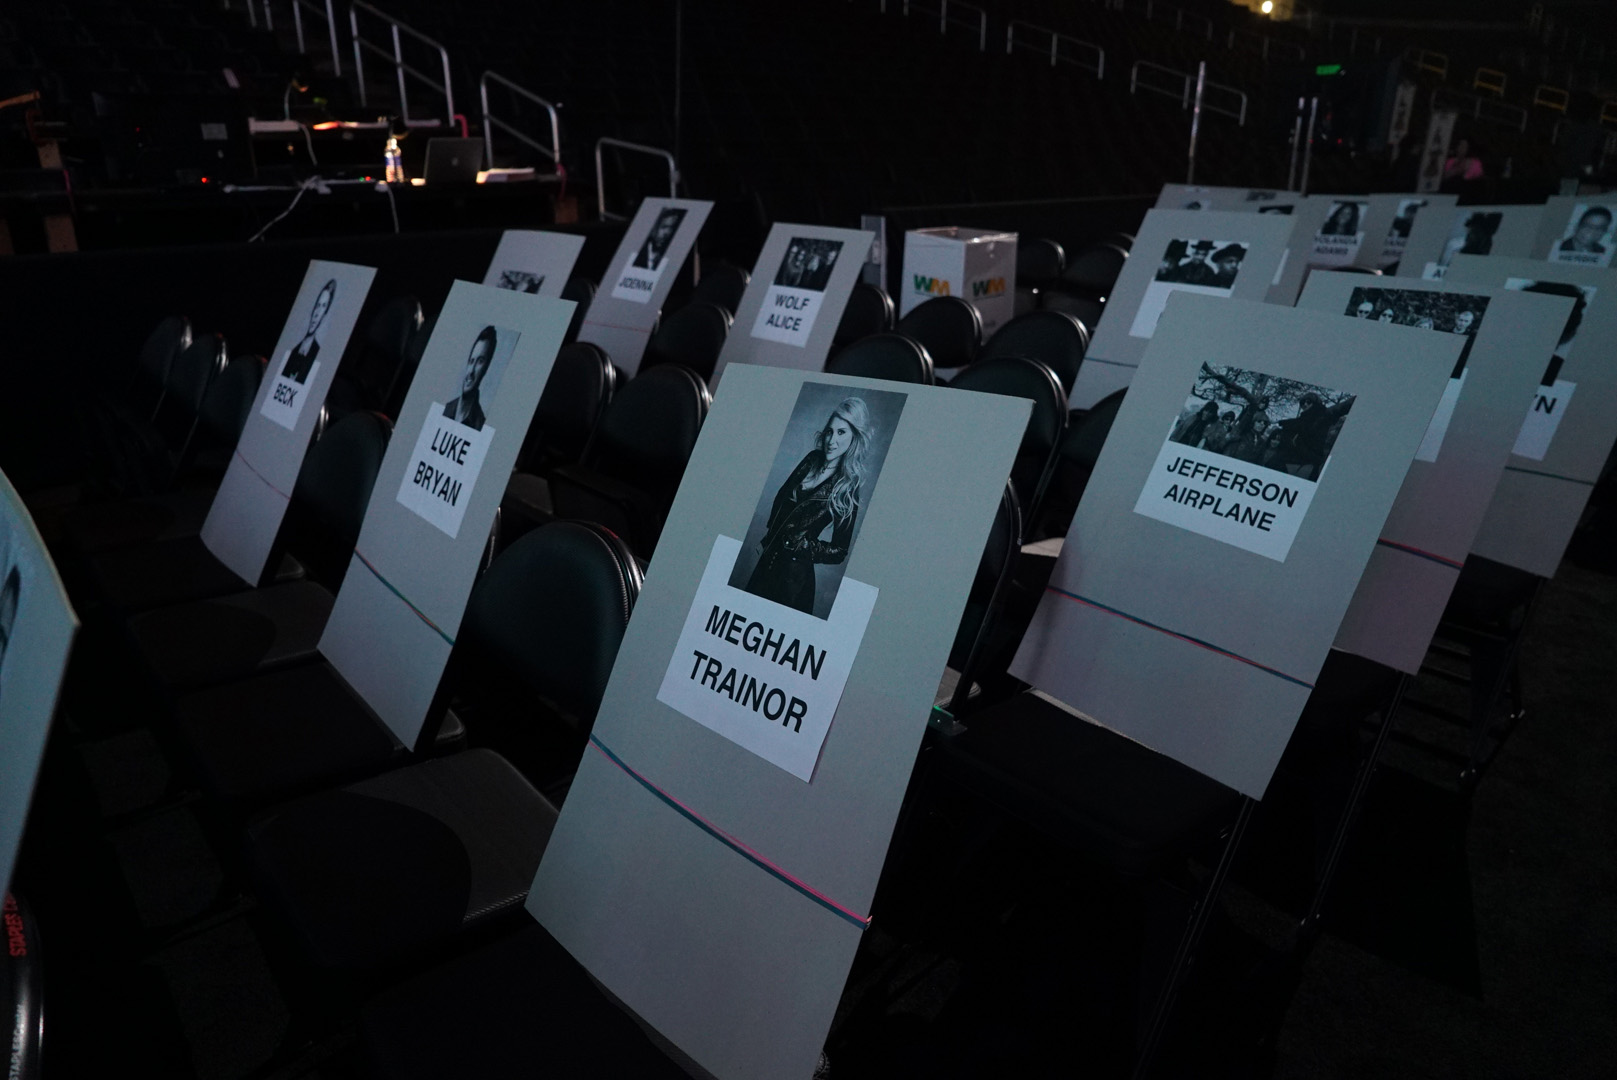 Meghan Trainor and Jefferson Airplane's seats are marked for the big night.